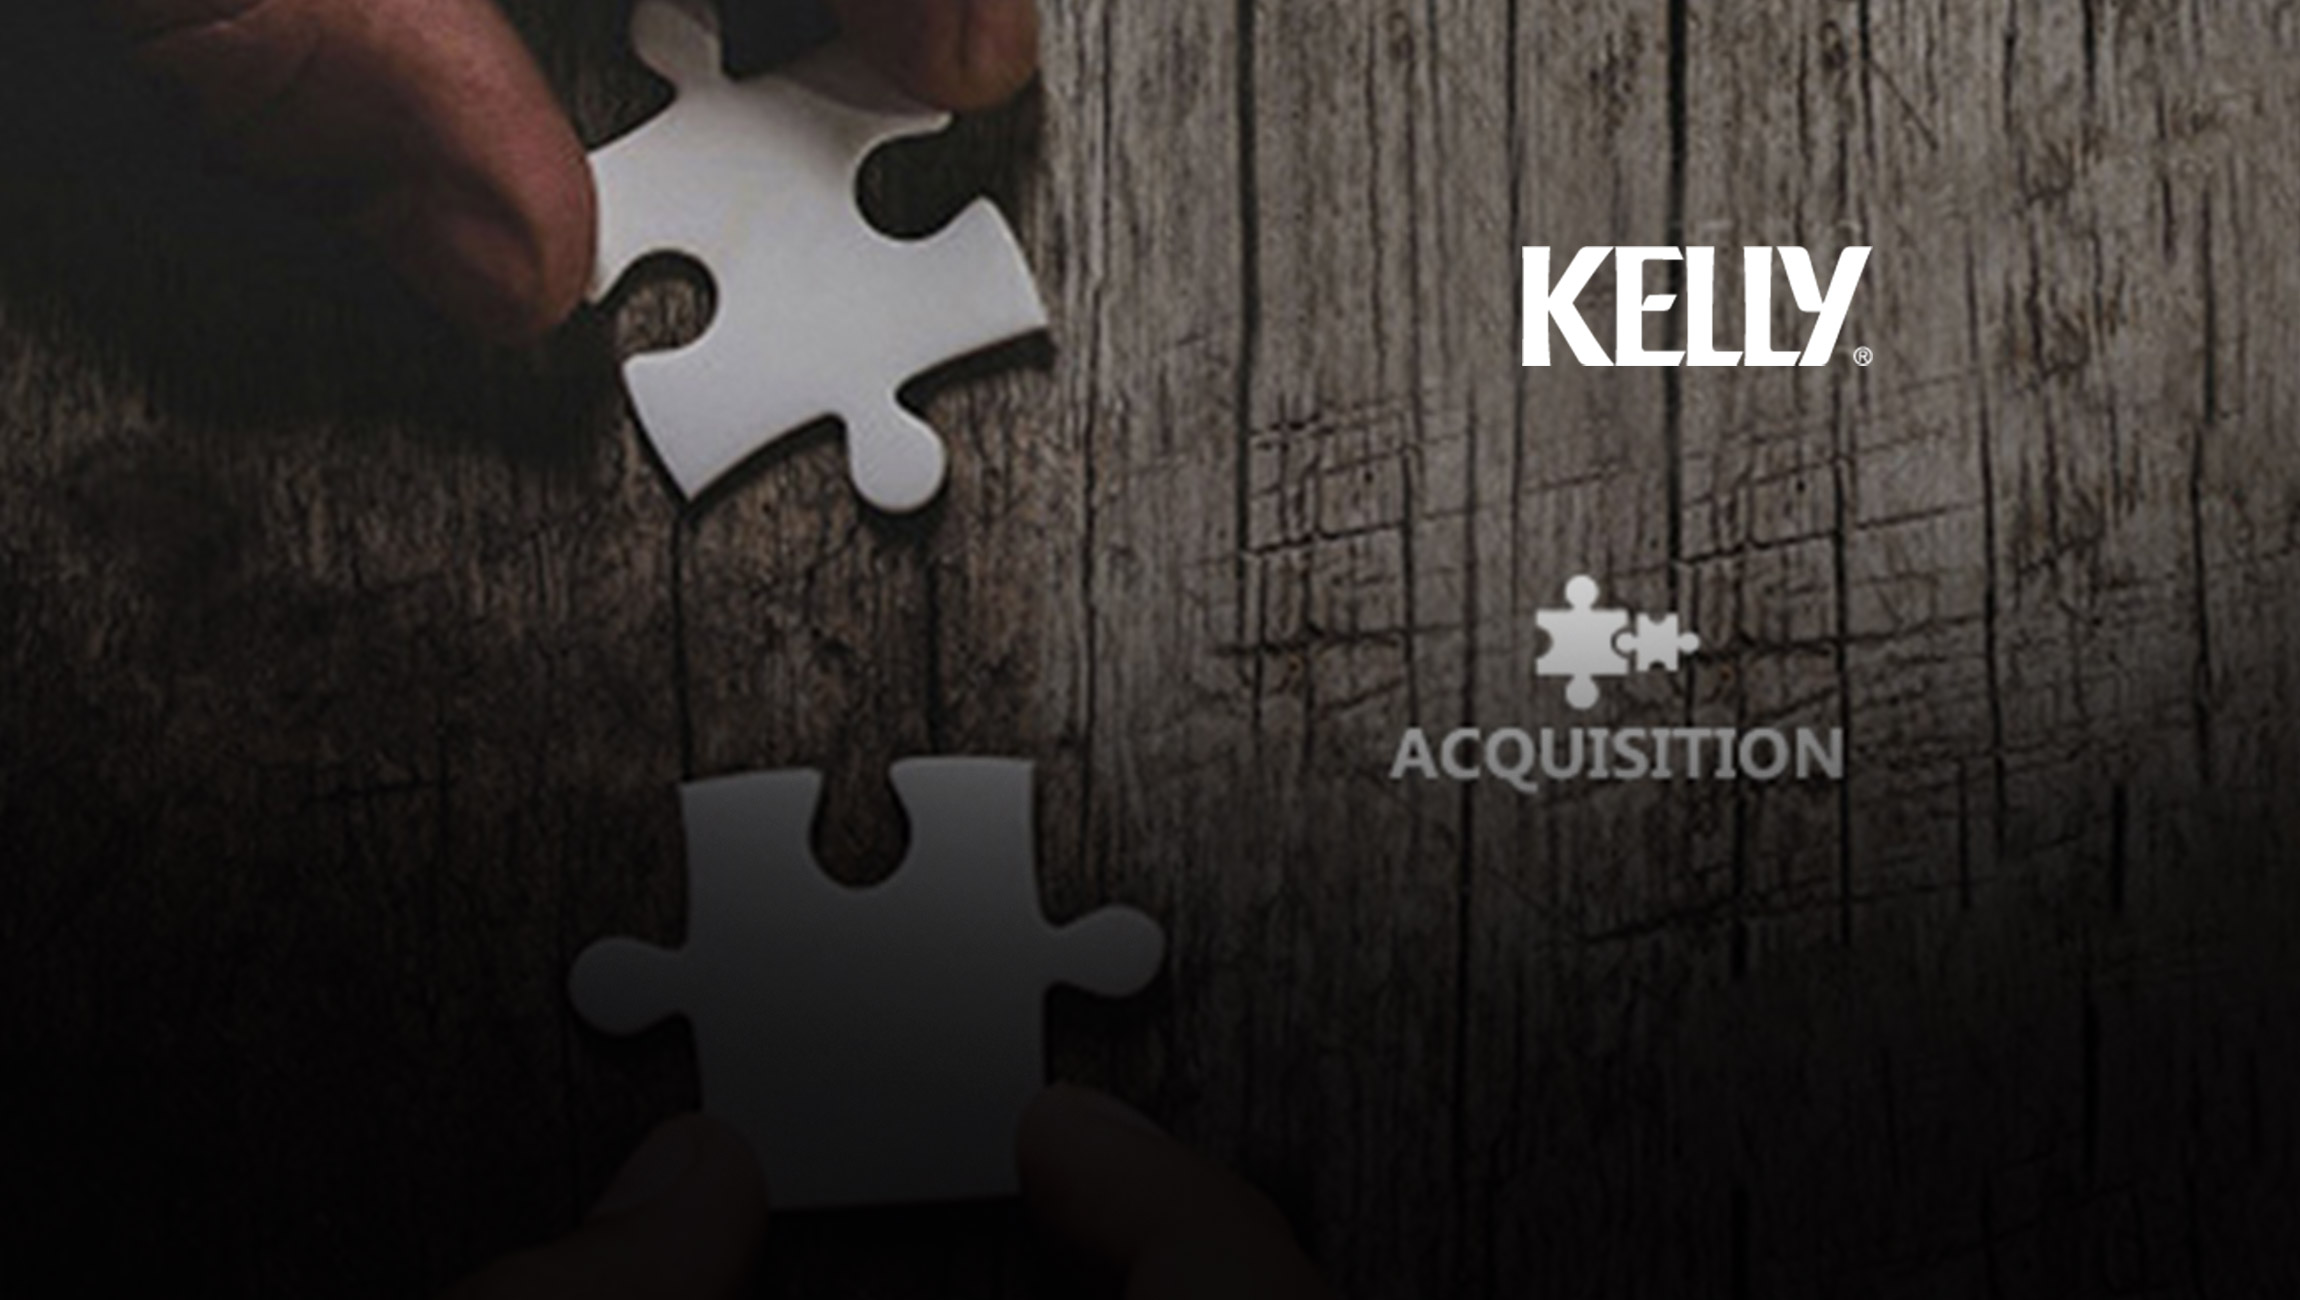 Kelly Services Acquires Insight, Expanding its Education Specialty Business